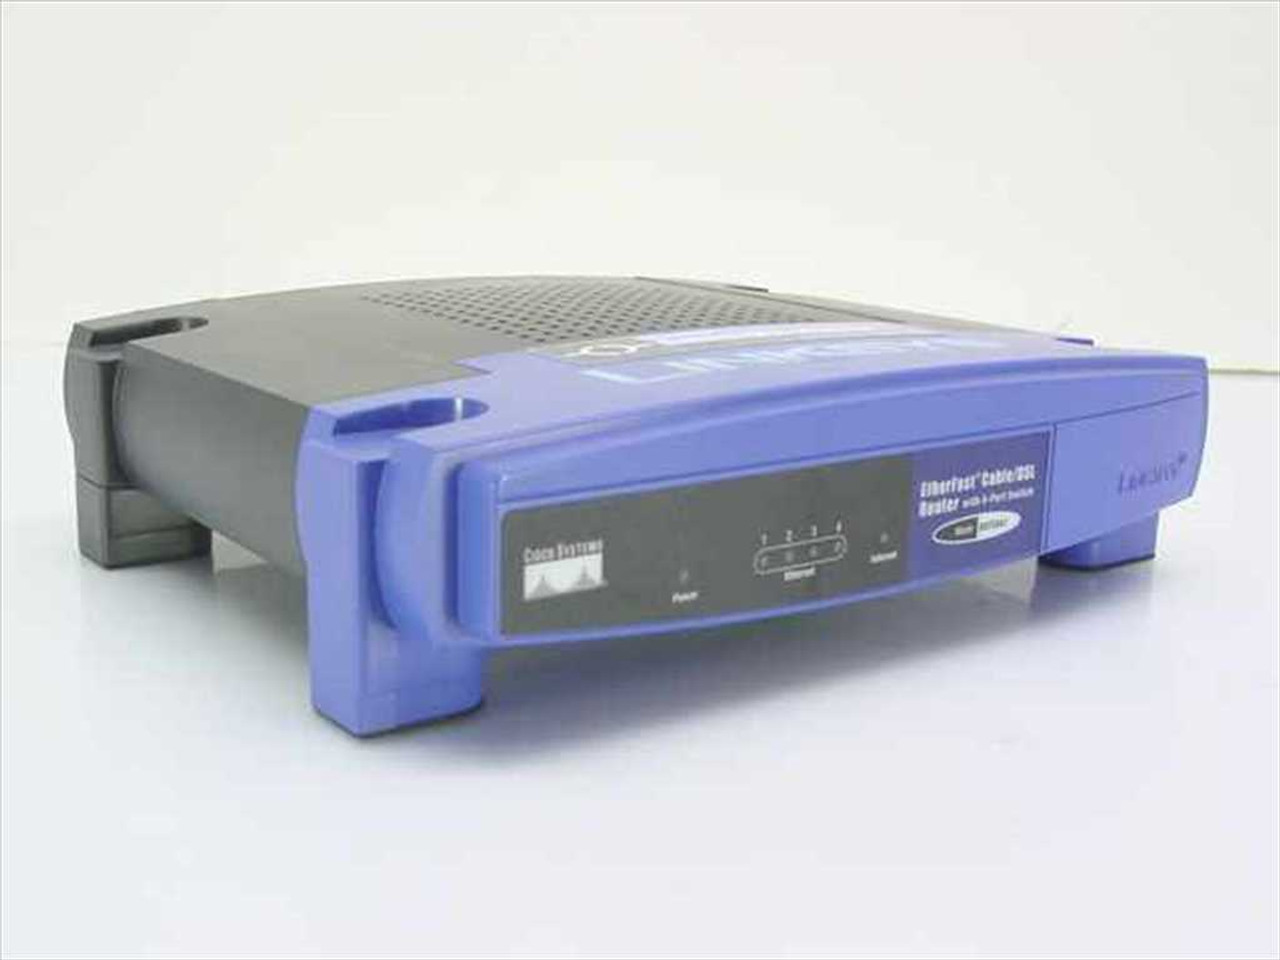 Linksys Etherfast Cable/DSL Router with 4-Port Switch (BEFSR41 v3) ...